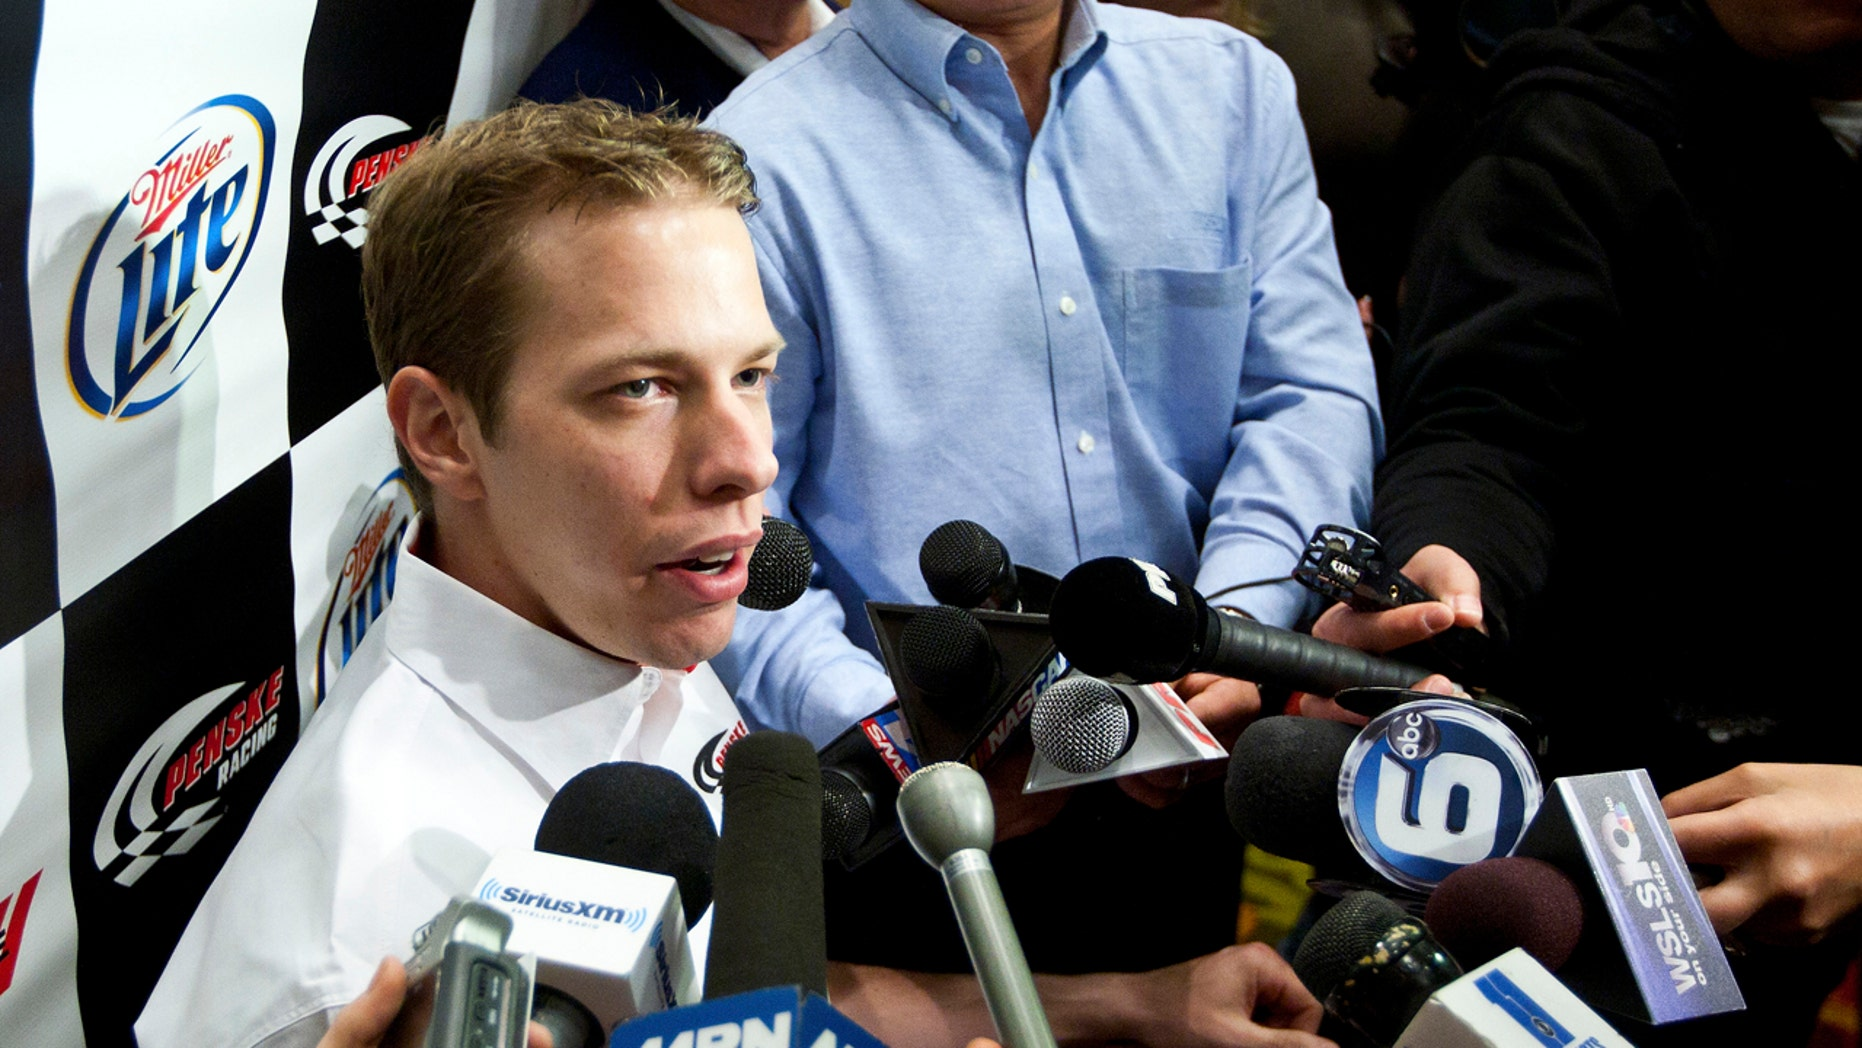 Racing driver Brad Keselowski in 2012. He was something of an inspiration to Kevin Sharp, who was himself a driver.